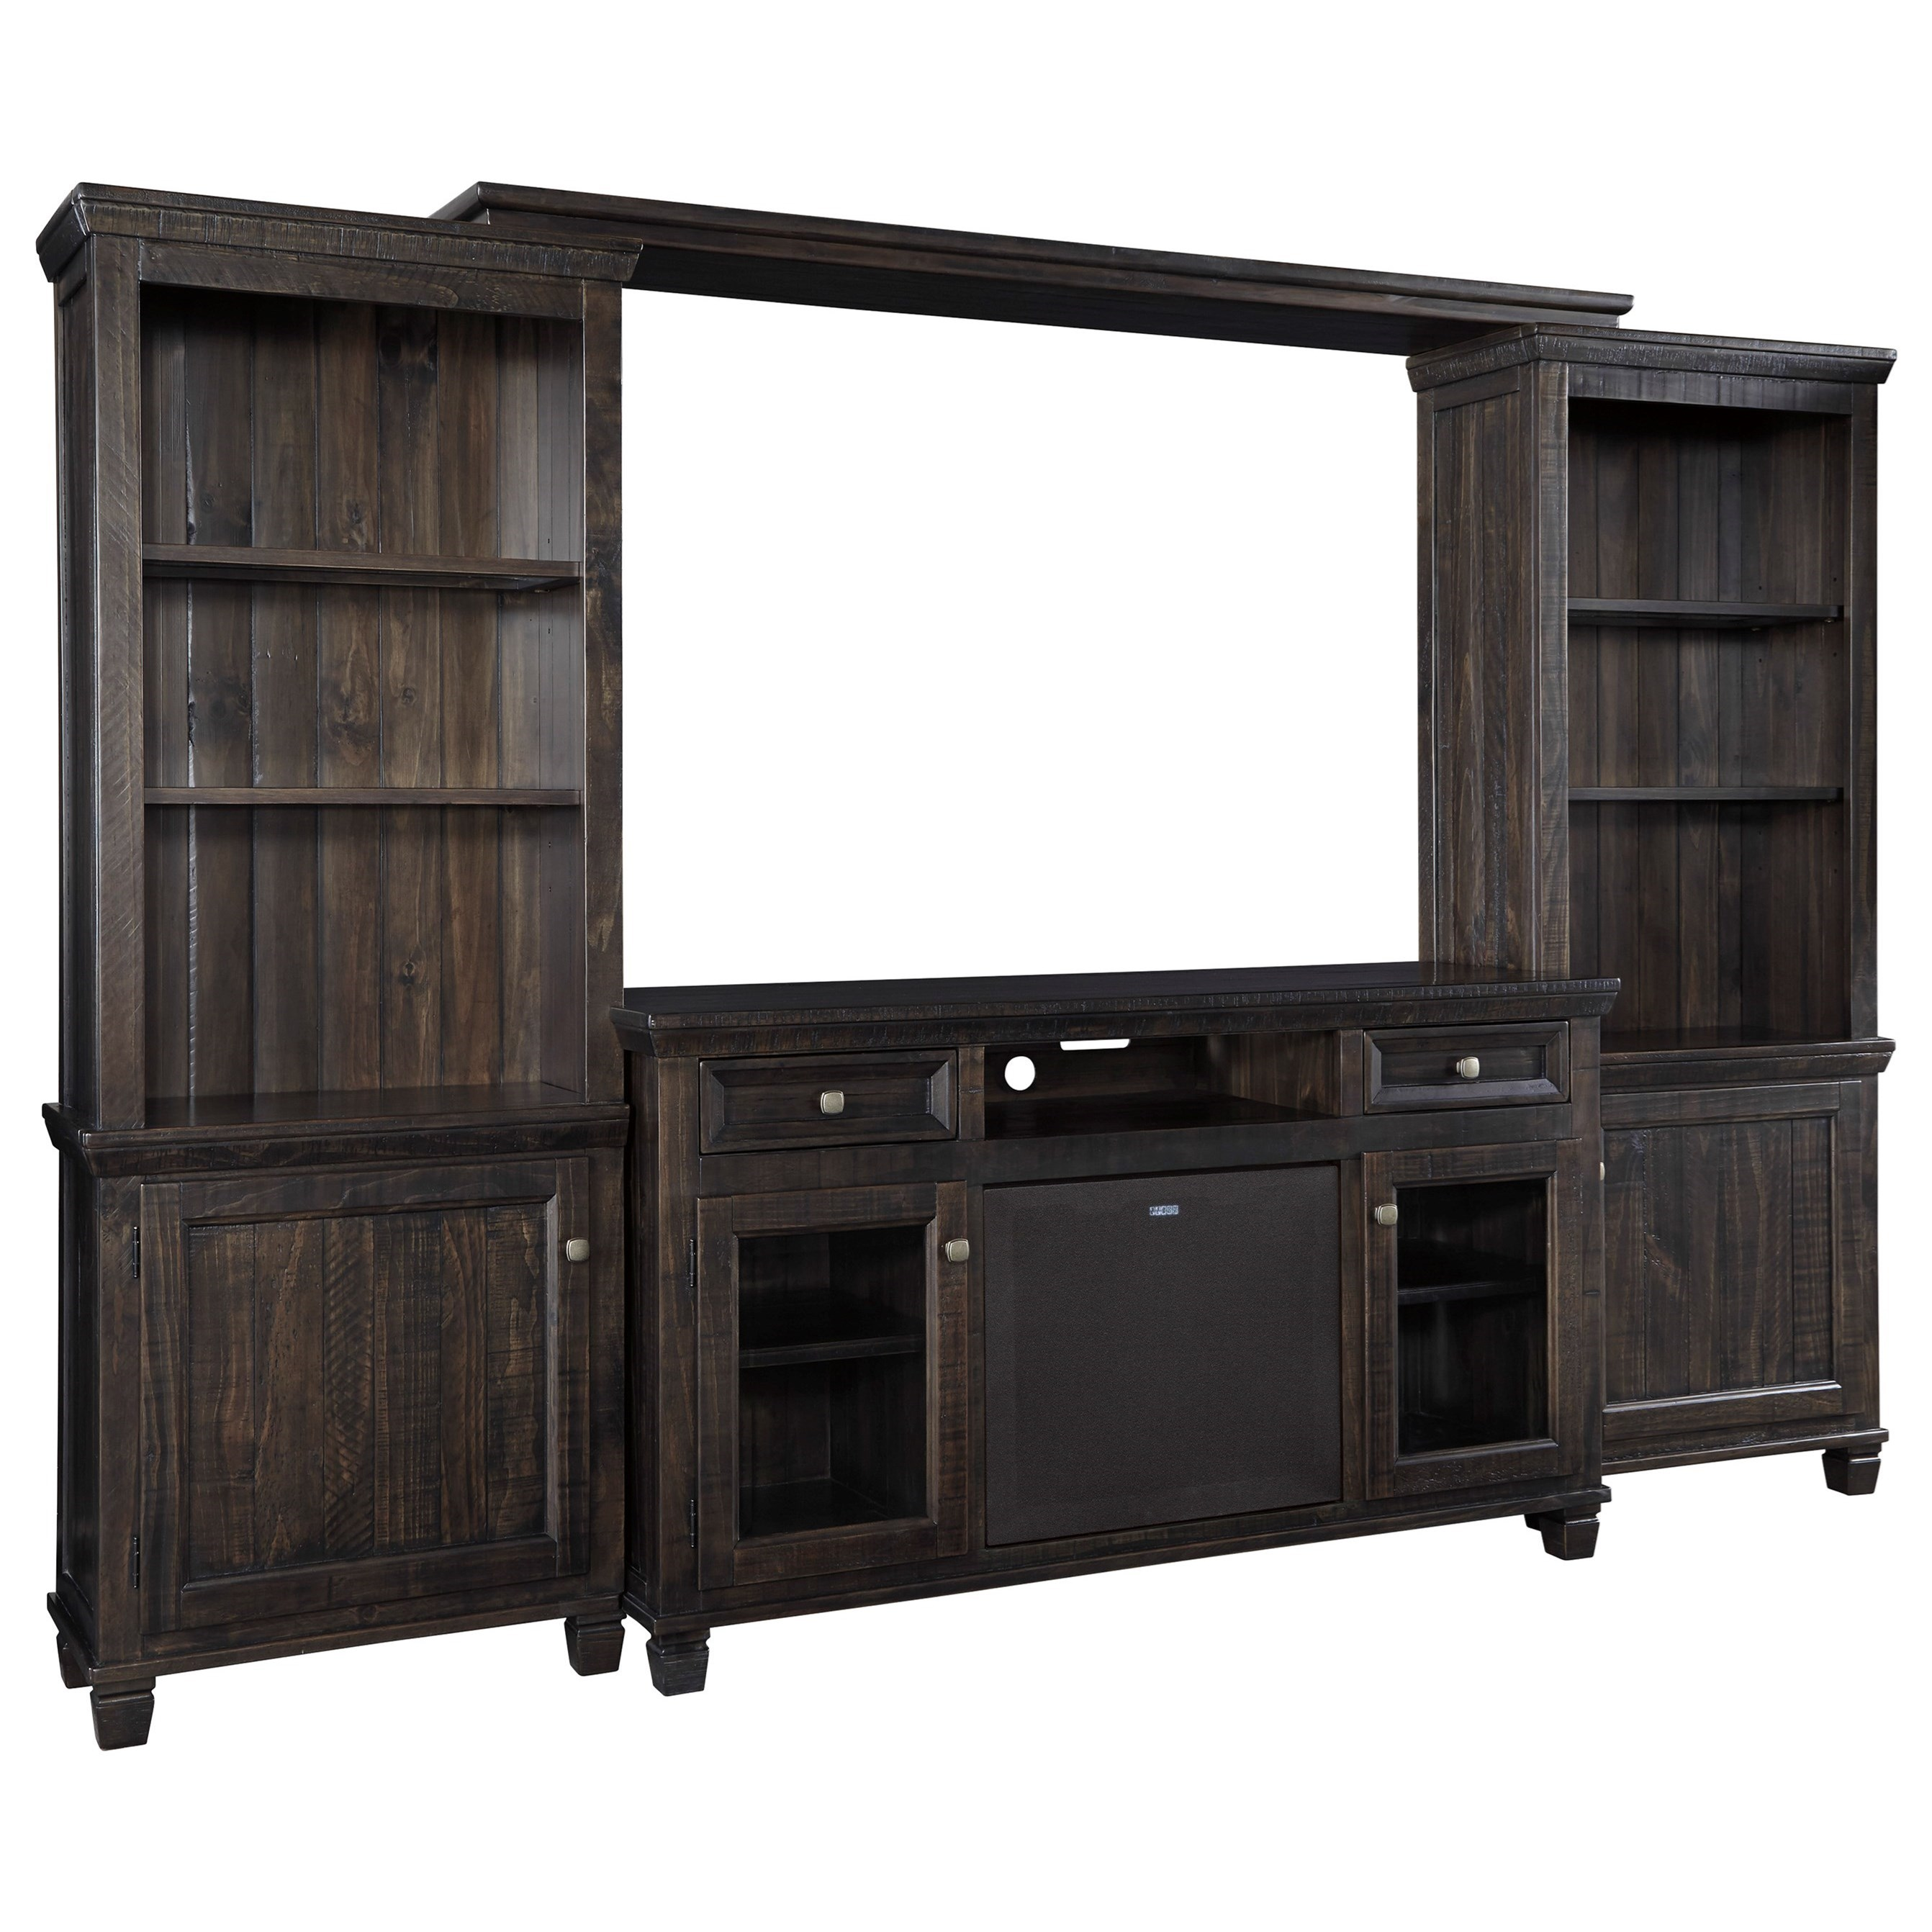 Signature Design by Ashley Townser Entertainment Center w/ Large Speaker - Item Number: W636-33+30+35+34+W100-41